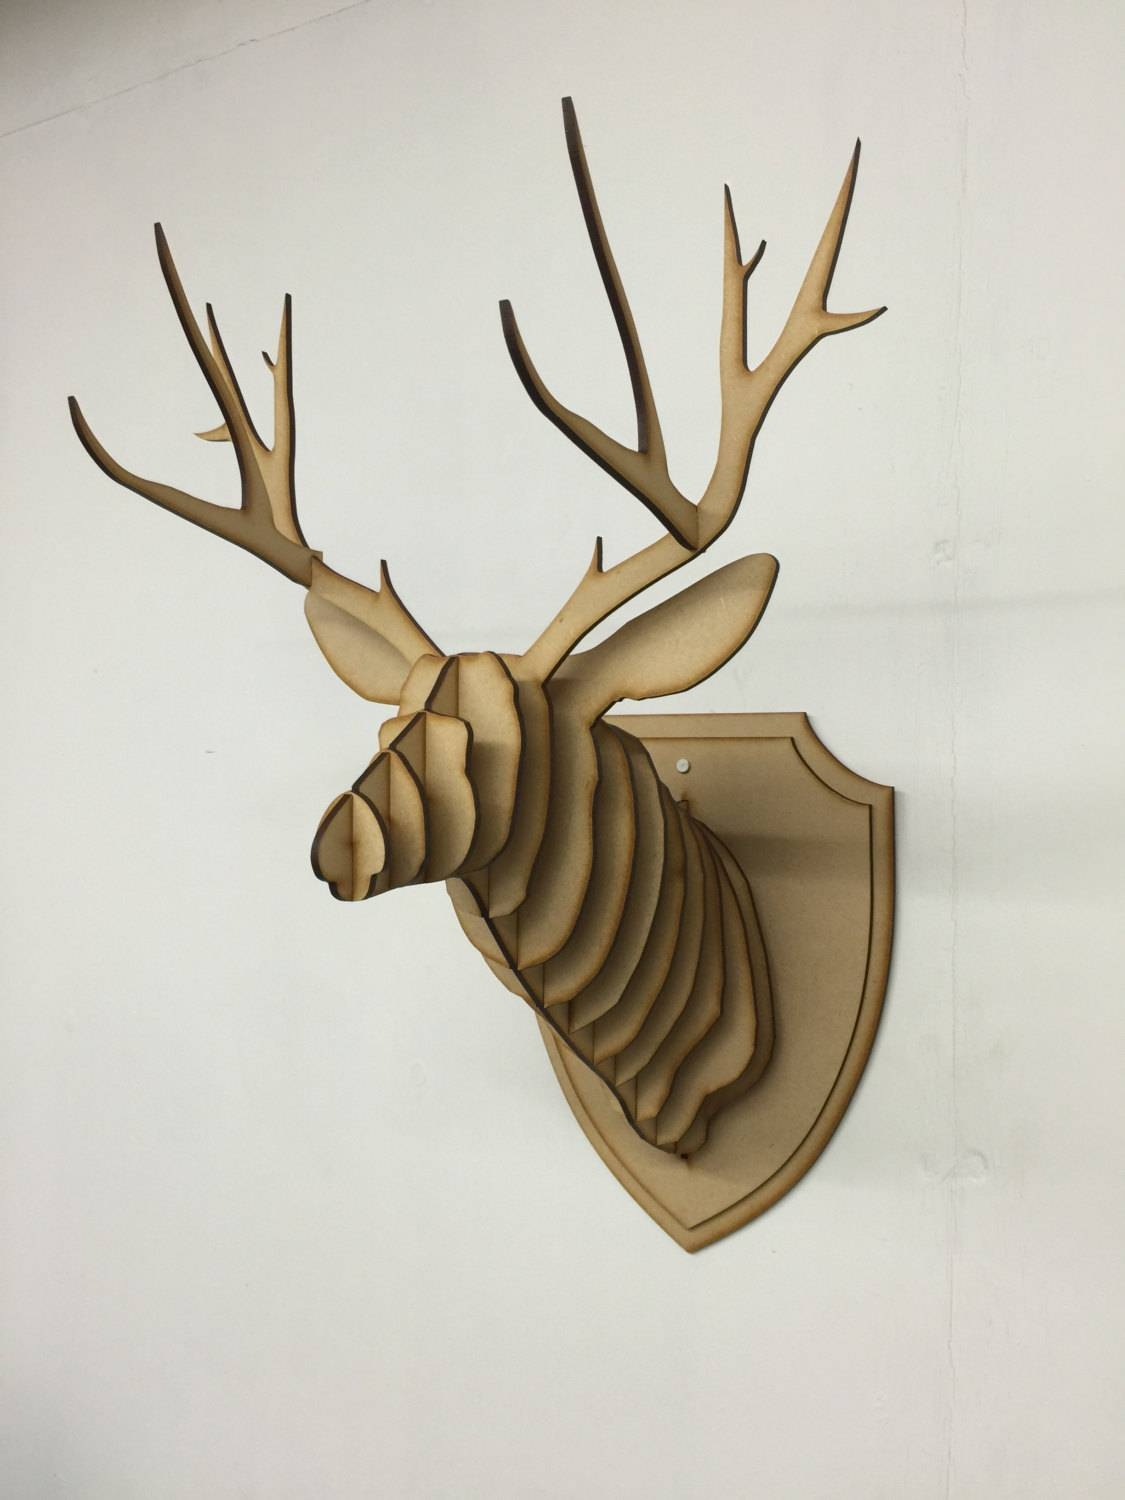 Large/ Small Wooden Deer Head Kit Wall Art Decor Laser Cut Intended For Newest Wooden Animal Wall Art (View 12 of 20)